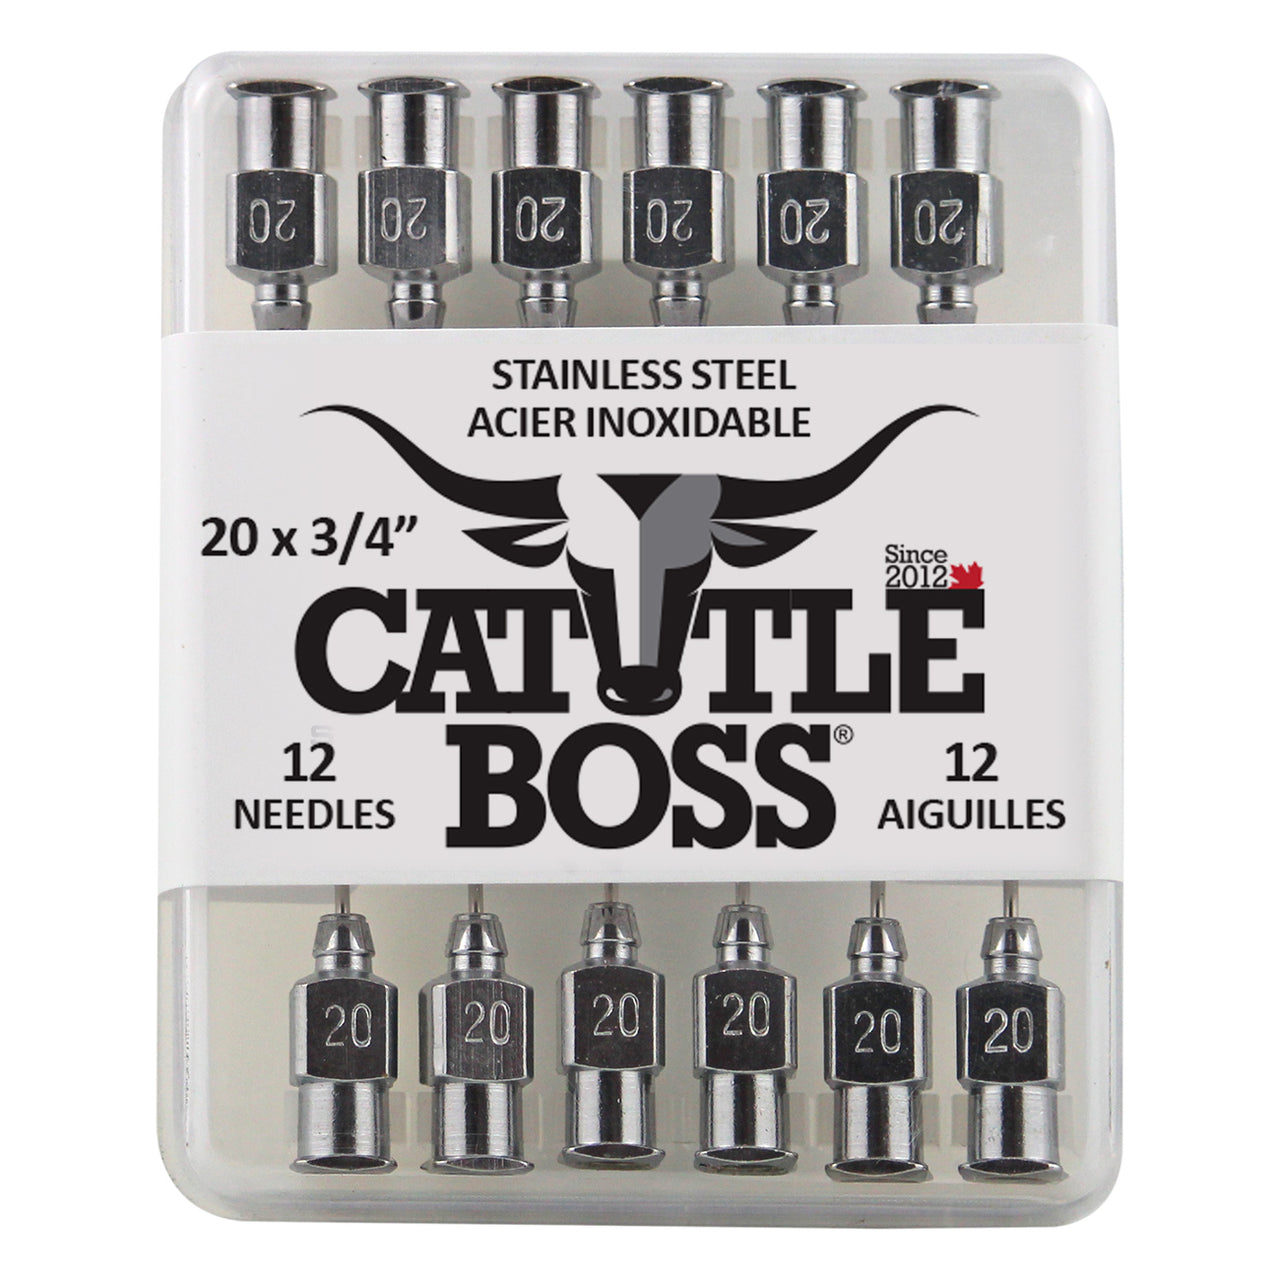 Cattle Boss stainless steel hub needle (12 pack) 20x3/4